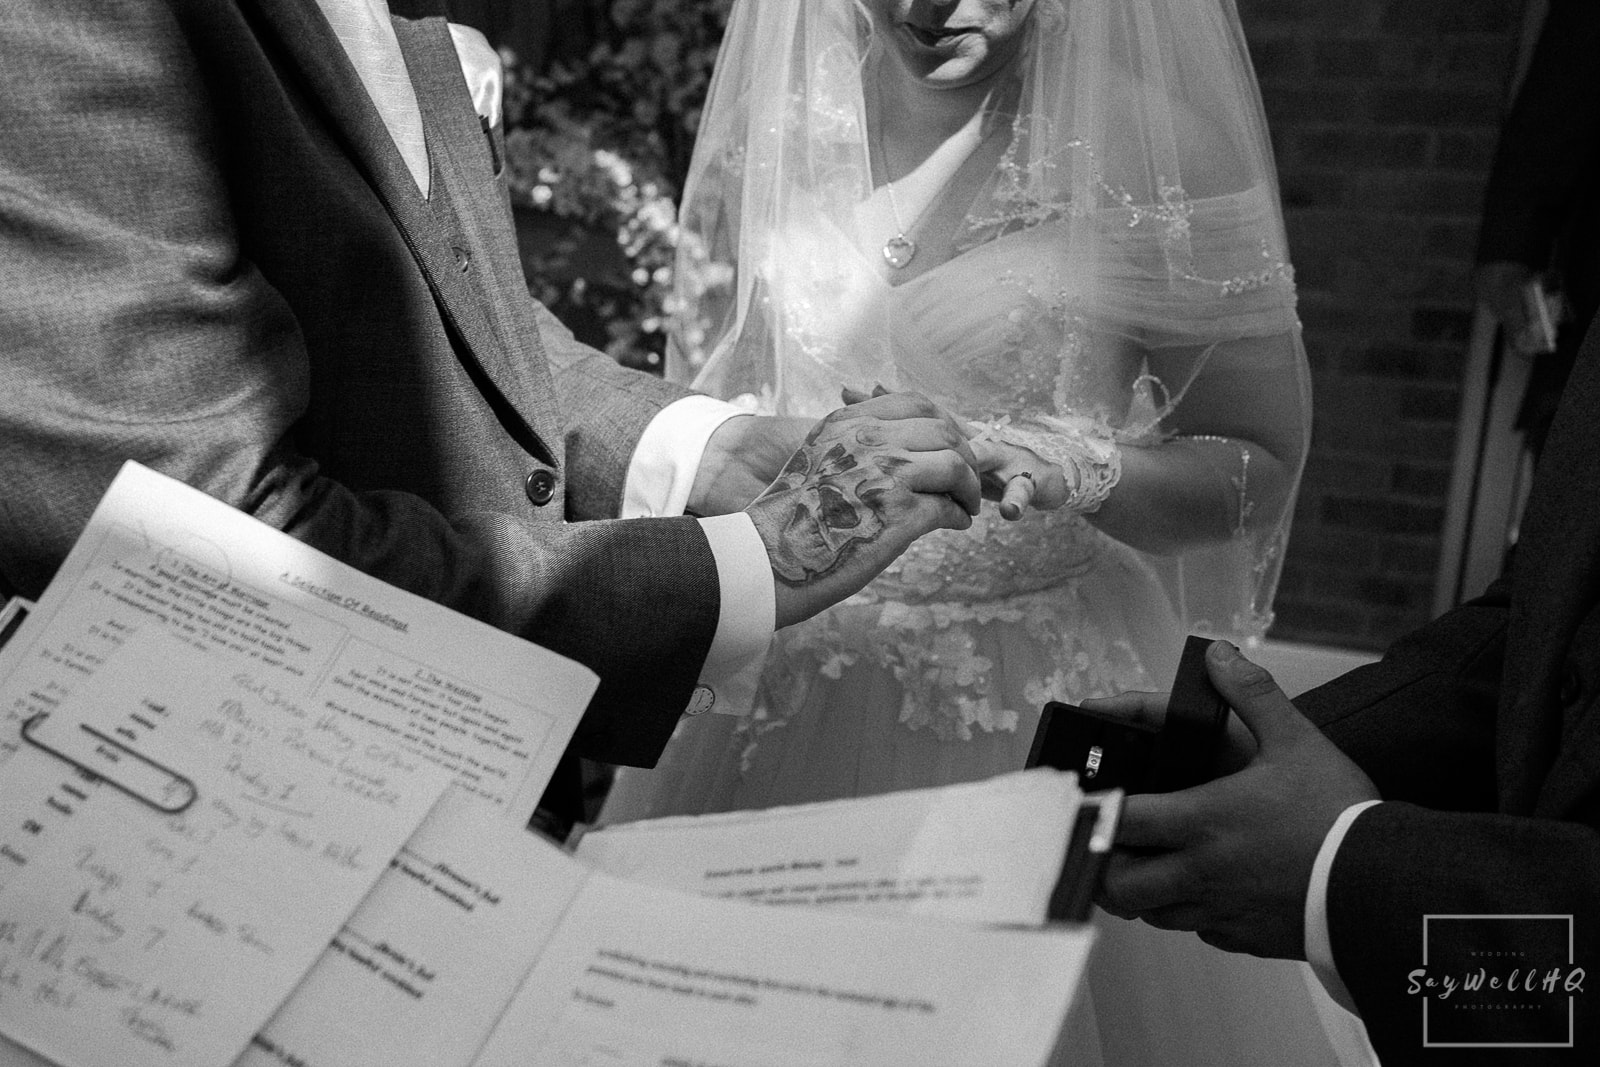 White Hart Inn Wedding Photography - Bride and Groom exchange rings at their wedding